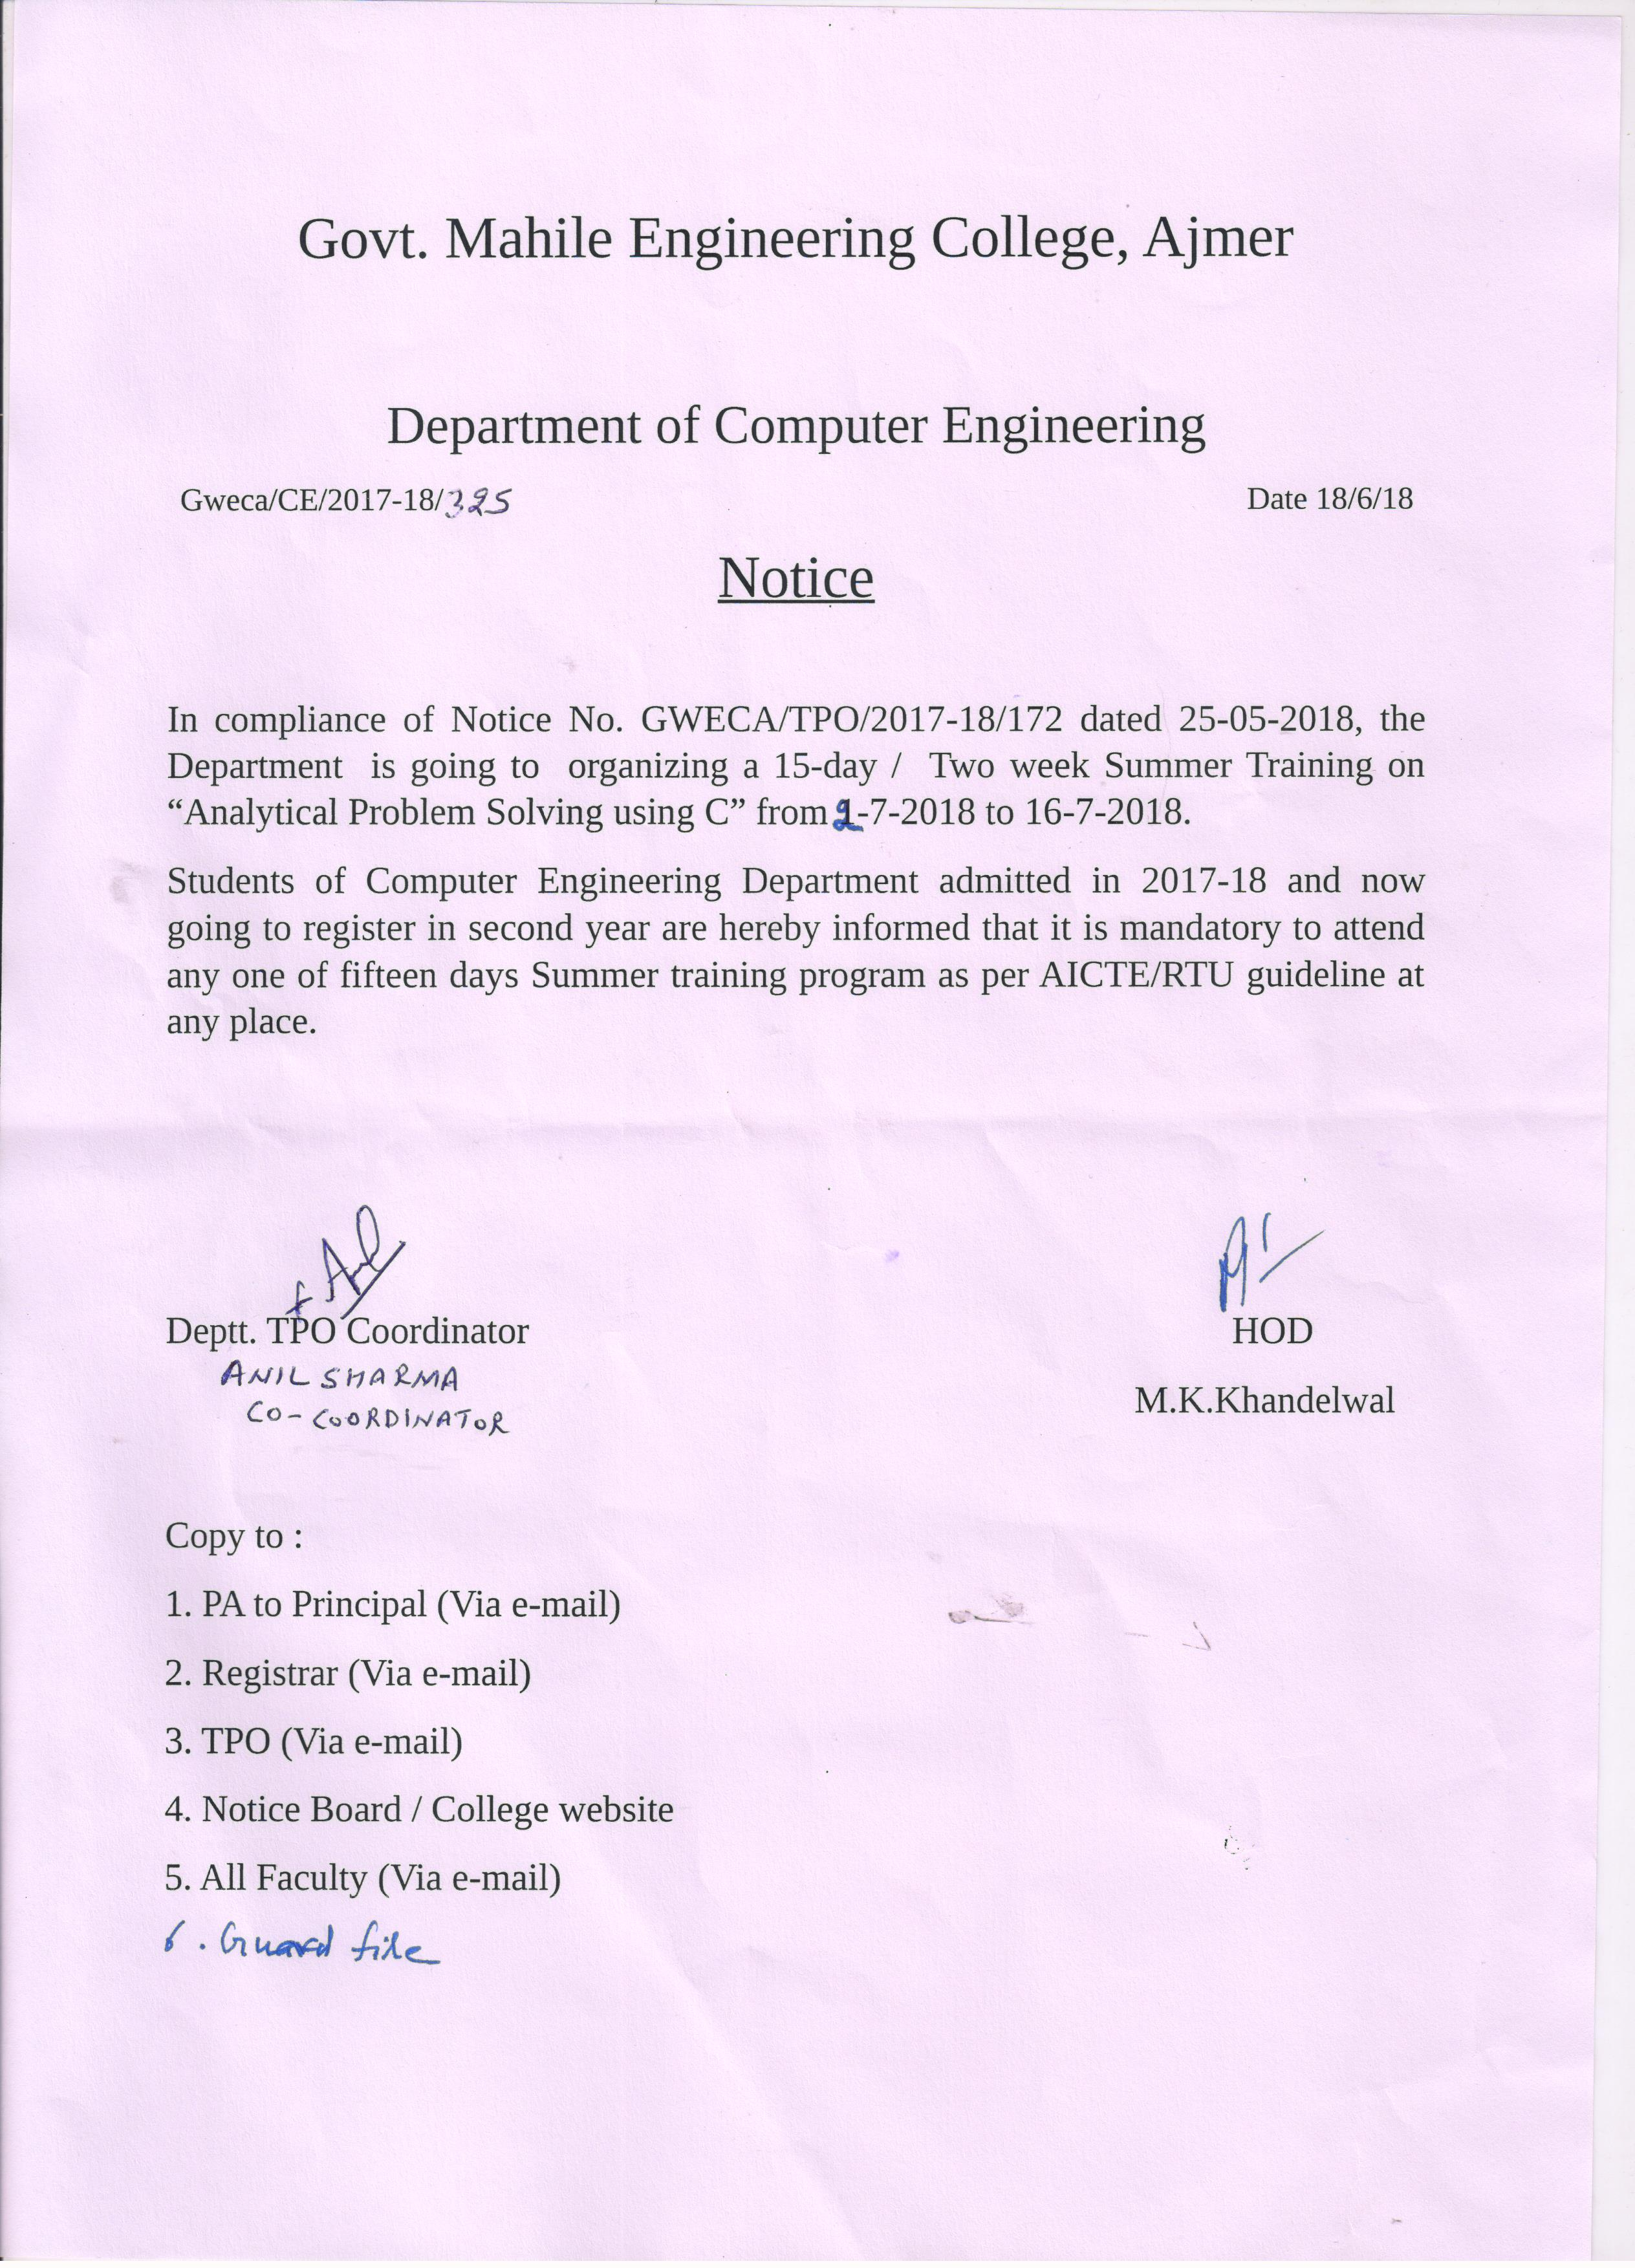 notice for summer training on analytical problem solving using c